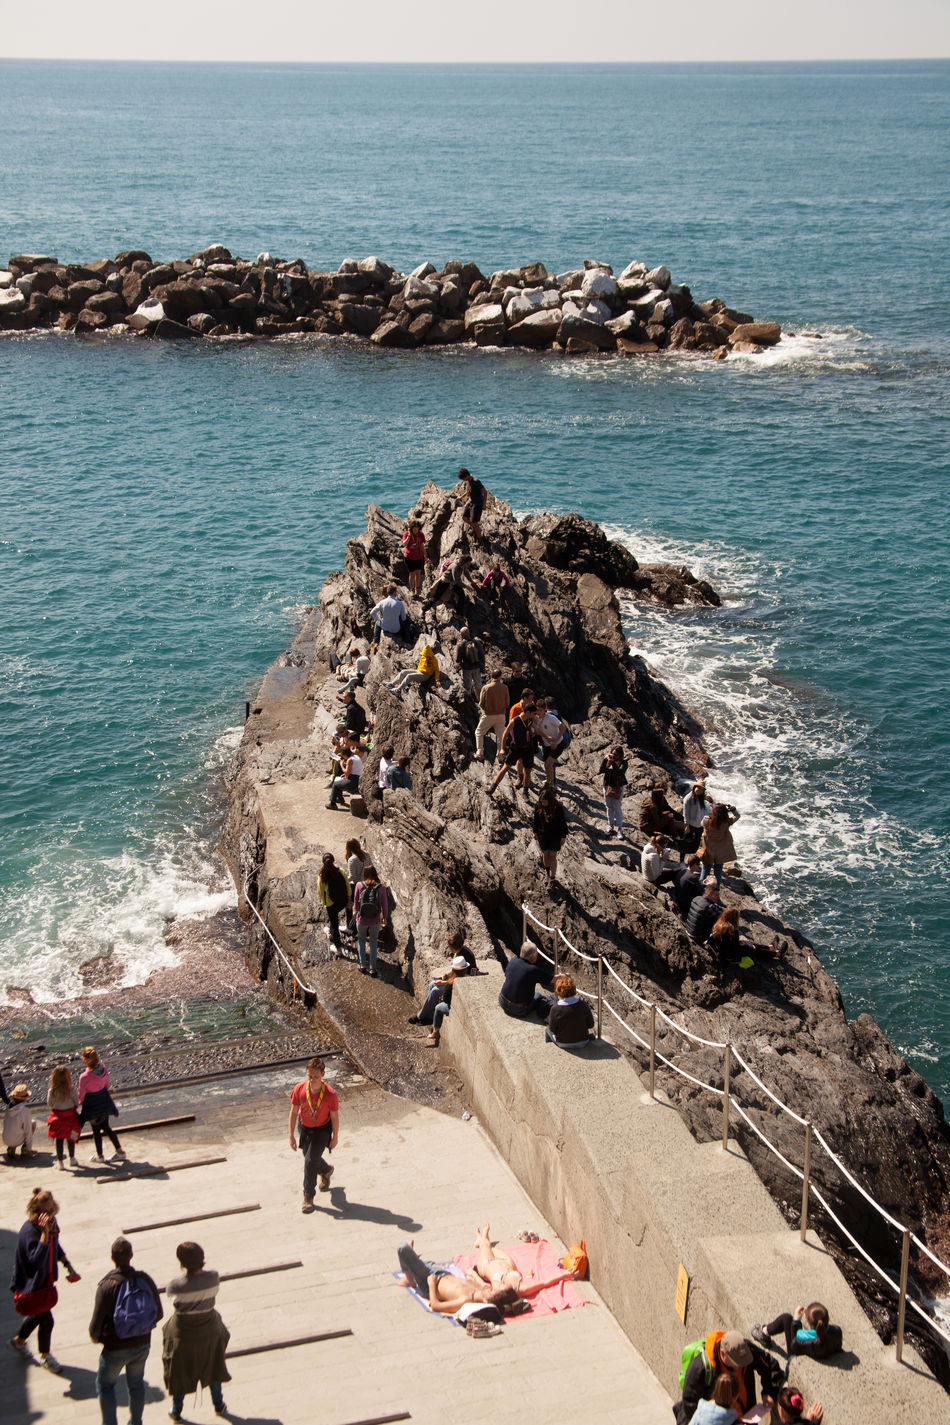 People on the rocks in Manarola, Cinque Terre, Italy Beauty In Nature Boat Cinque Terre Cinqueterre Coast Day Docks Horizon Over Water Nature People Seating Pier Rock - Object Rock Formation Scenics Sea Ship Shipping  Sky Tranquil Scene Tranquility Traveling Water